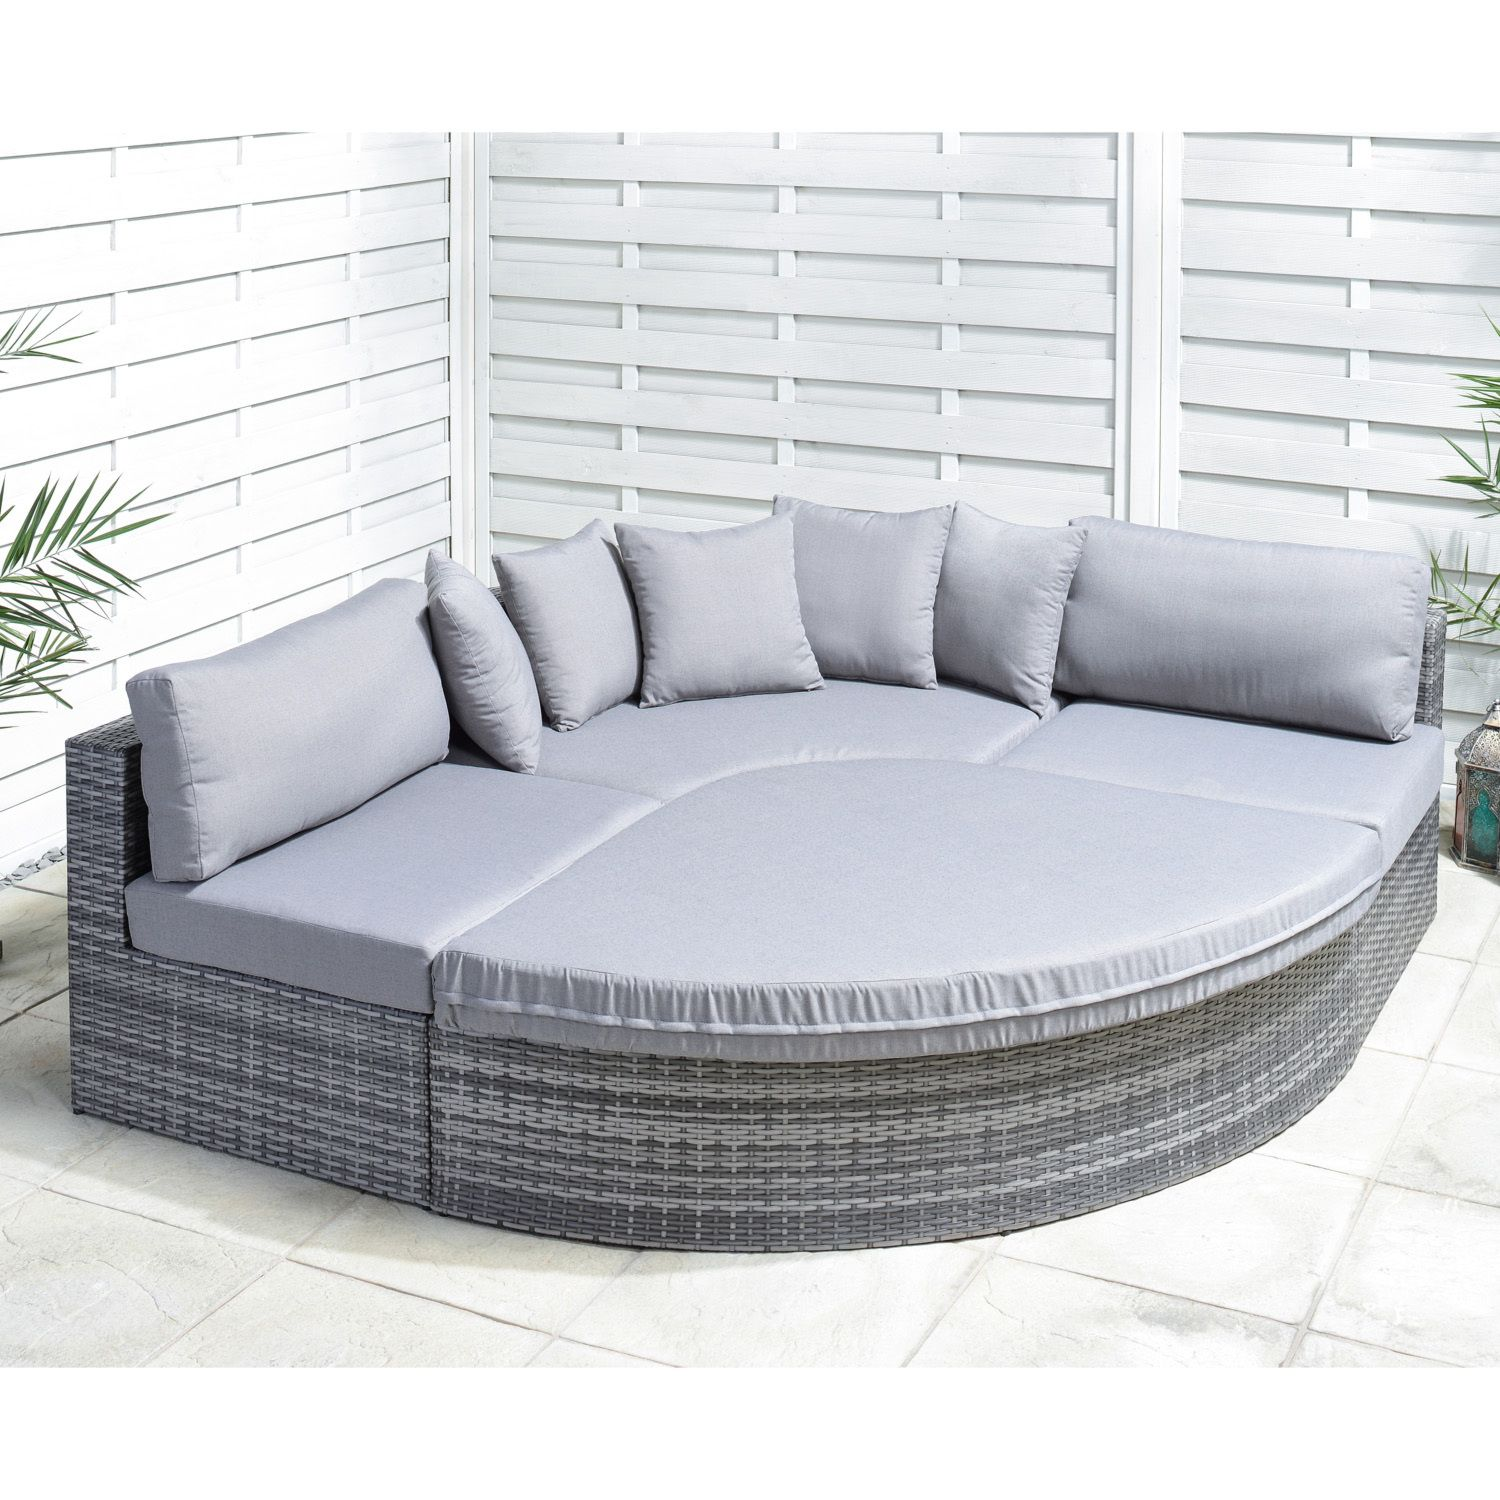 Austin Sofa Set Garden furniture Pinterest